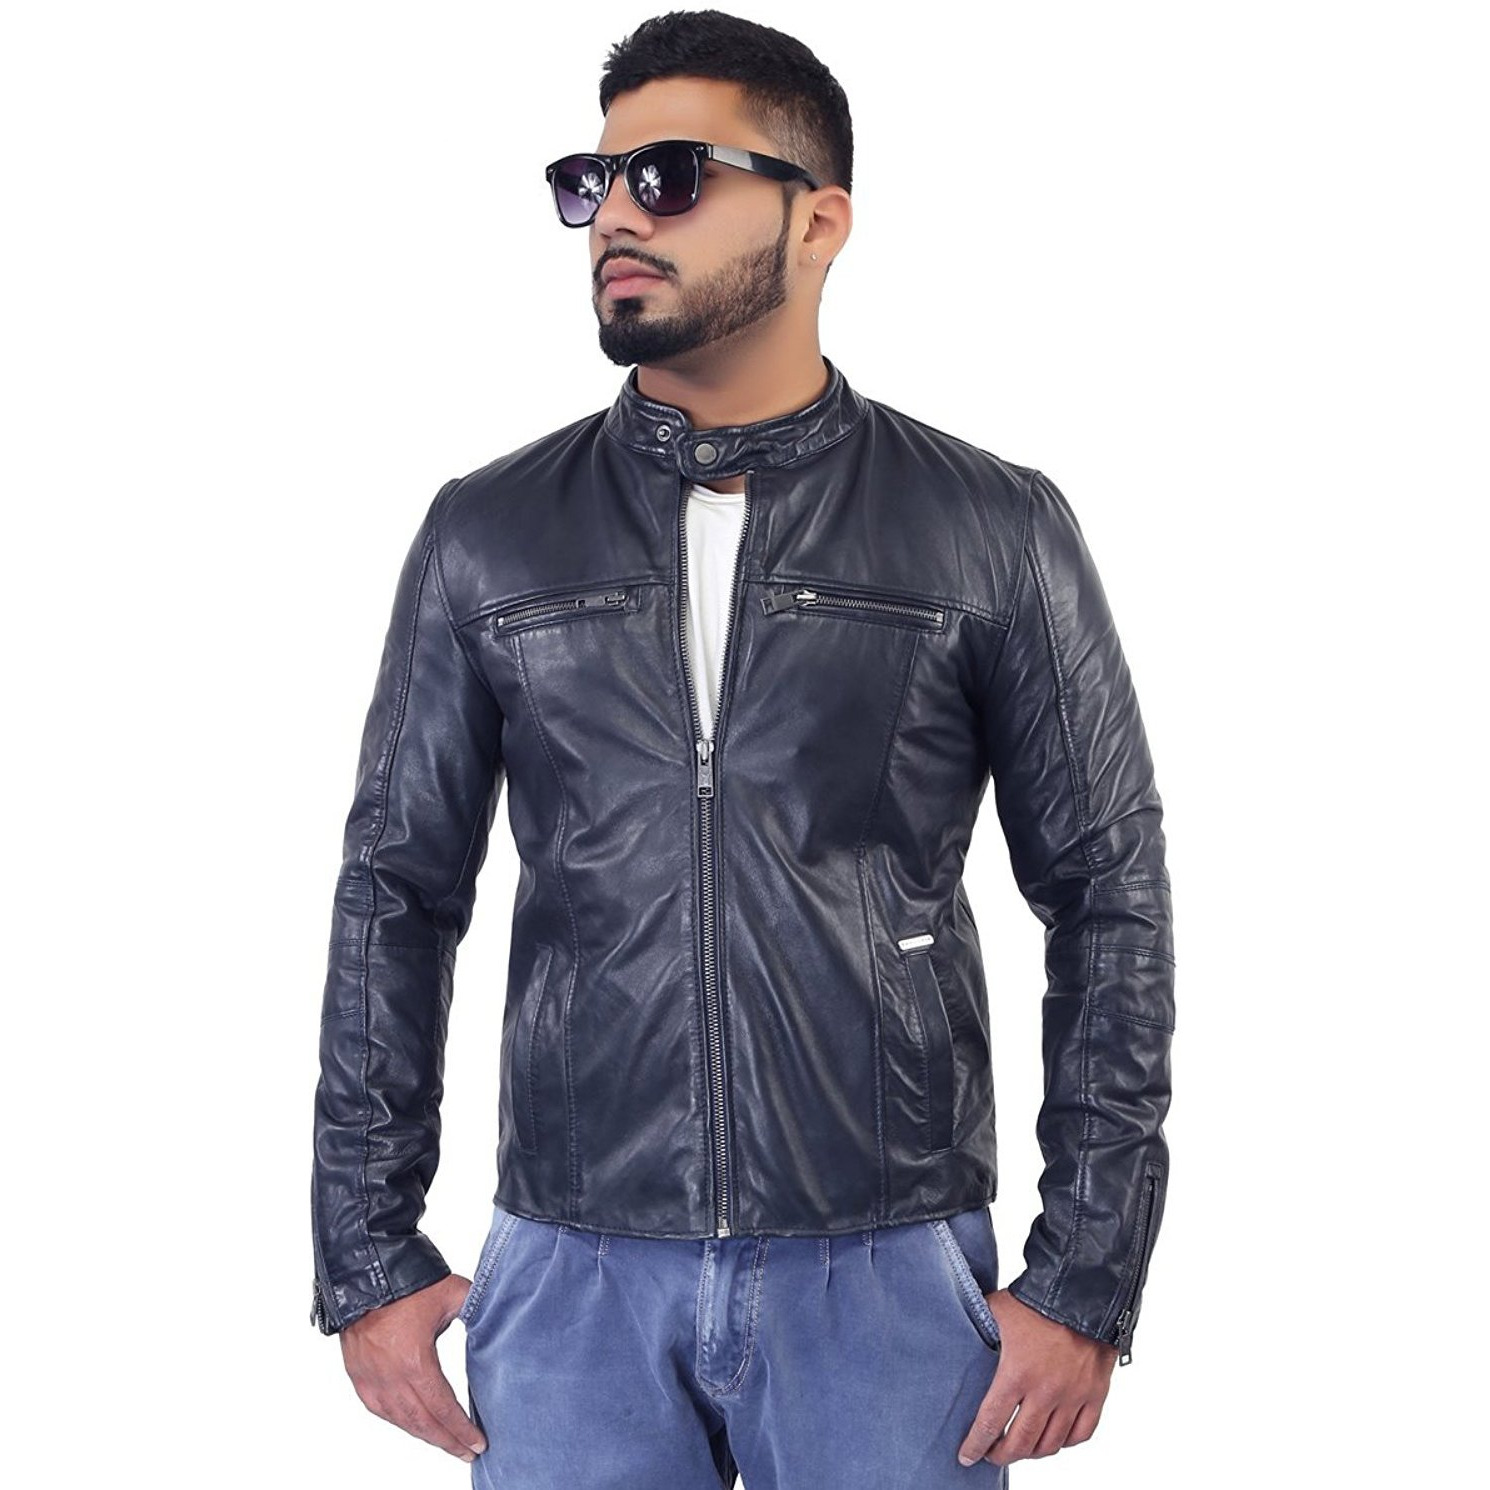 Bareskin Chest Zip Pockets Blue Leather Biker Jacket (Size:XS)